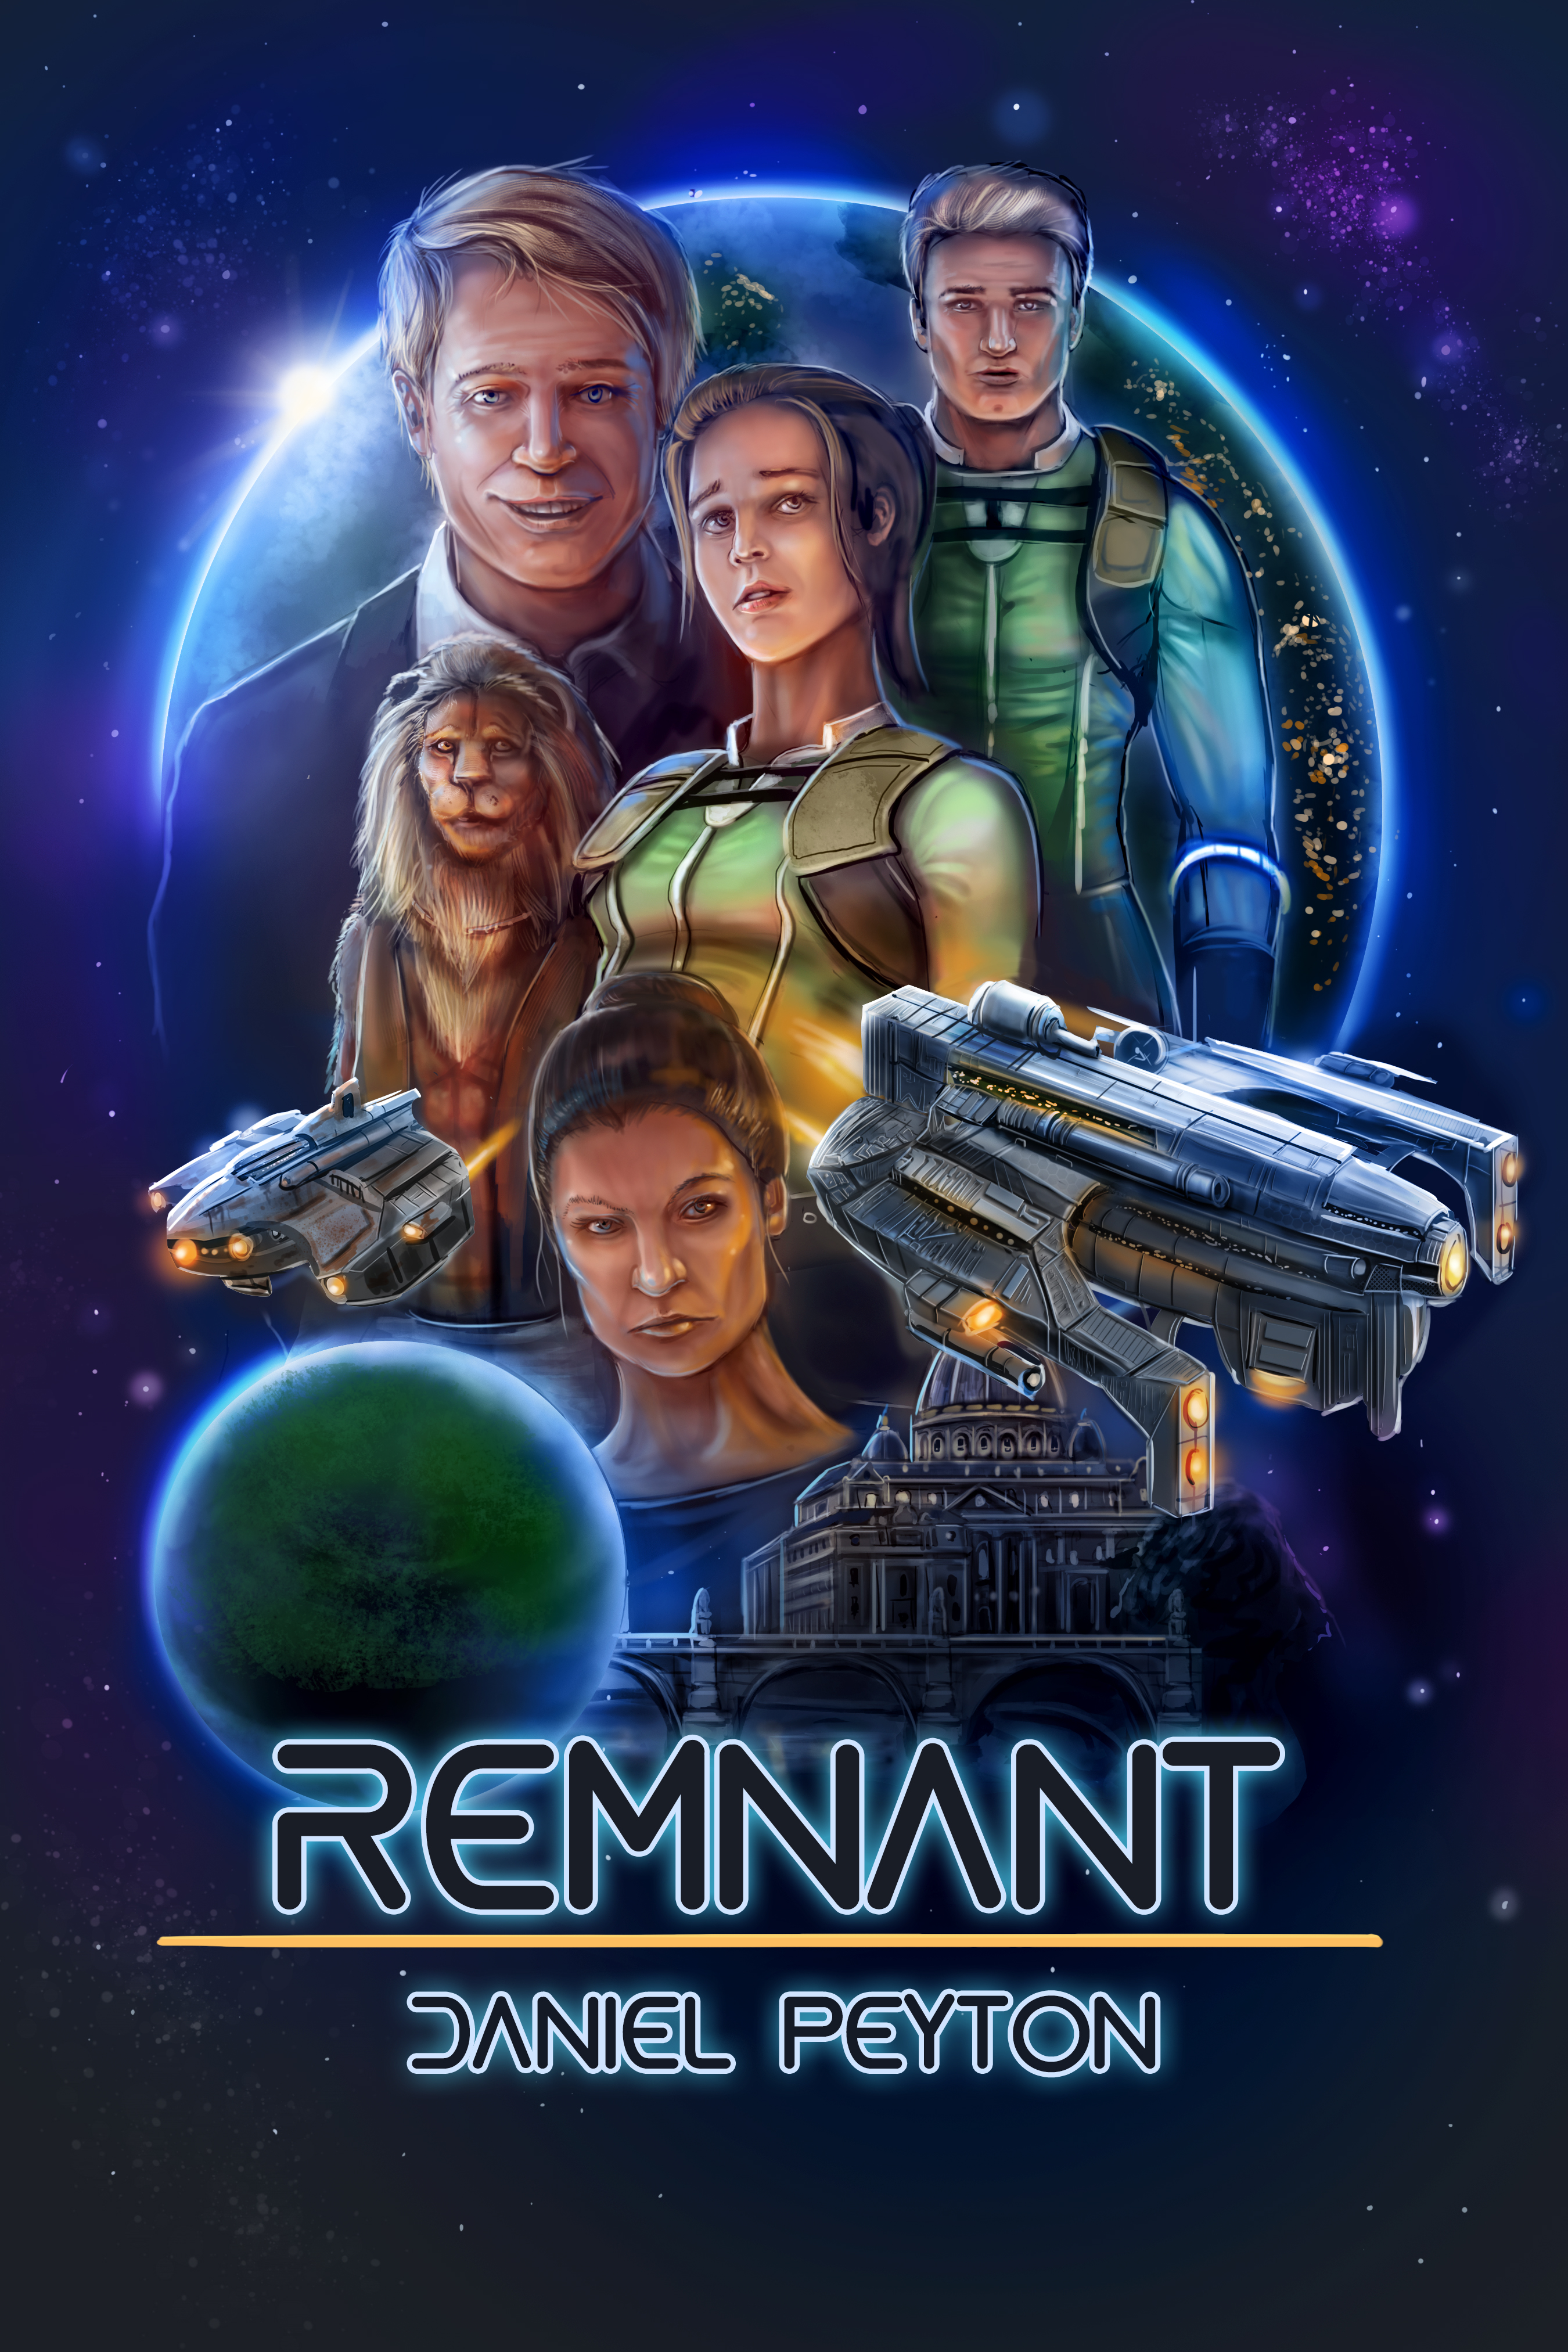 sci-fi cover art. Book cover by The Noble Artist for Remnant by Daniel Peyton